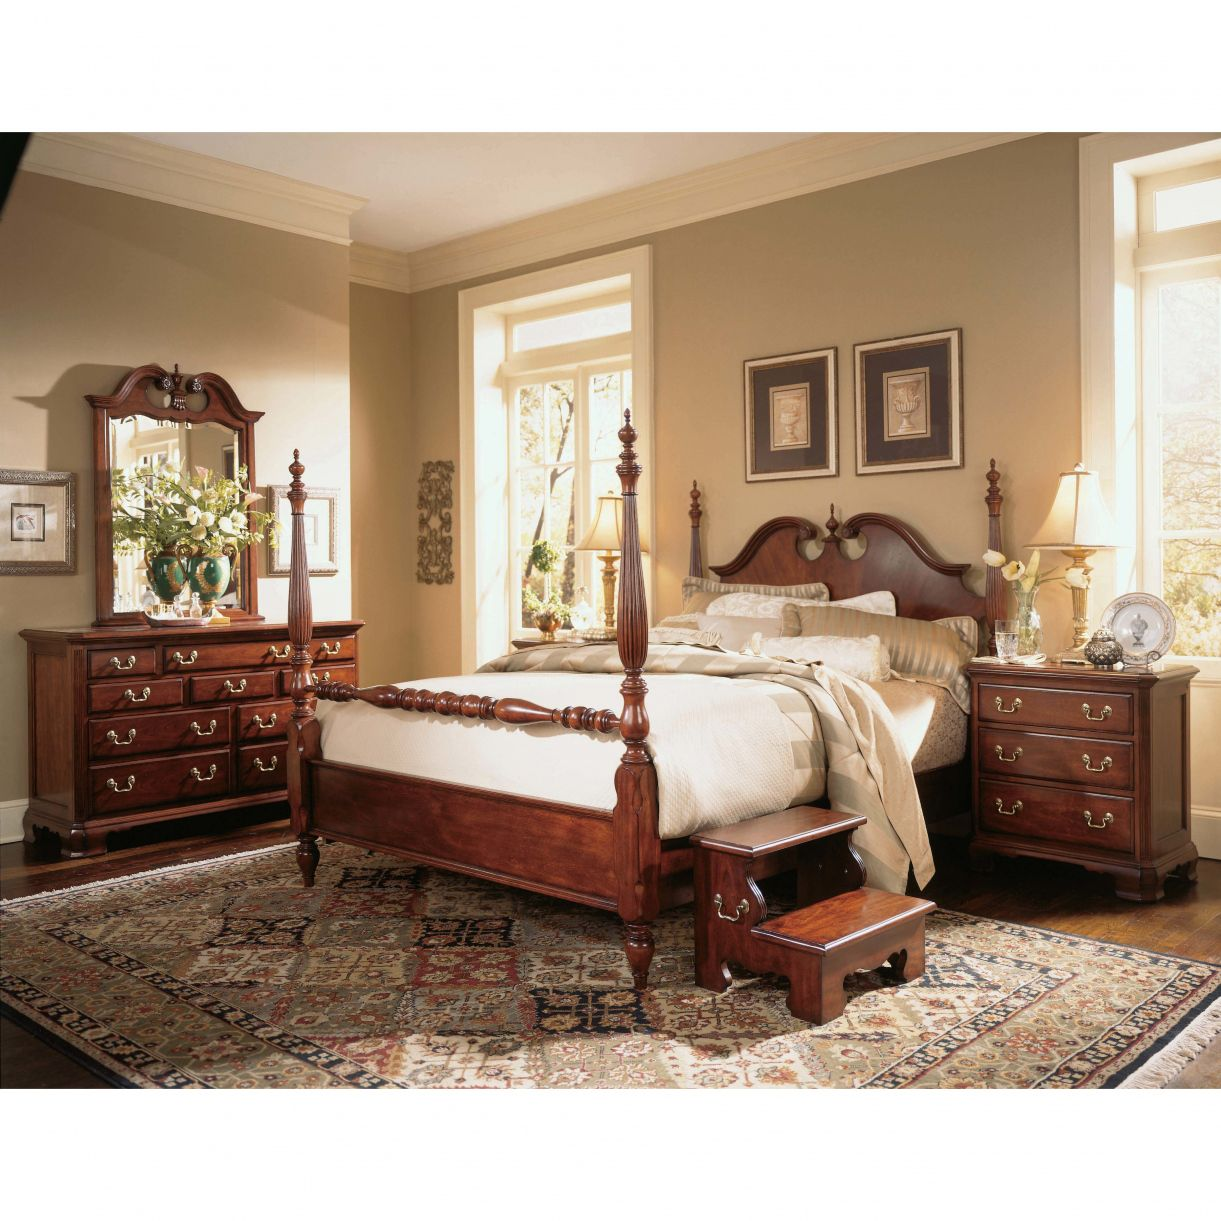 Queen Anne Bedroom Furniture Cherry Interior